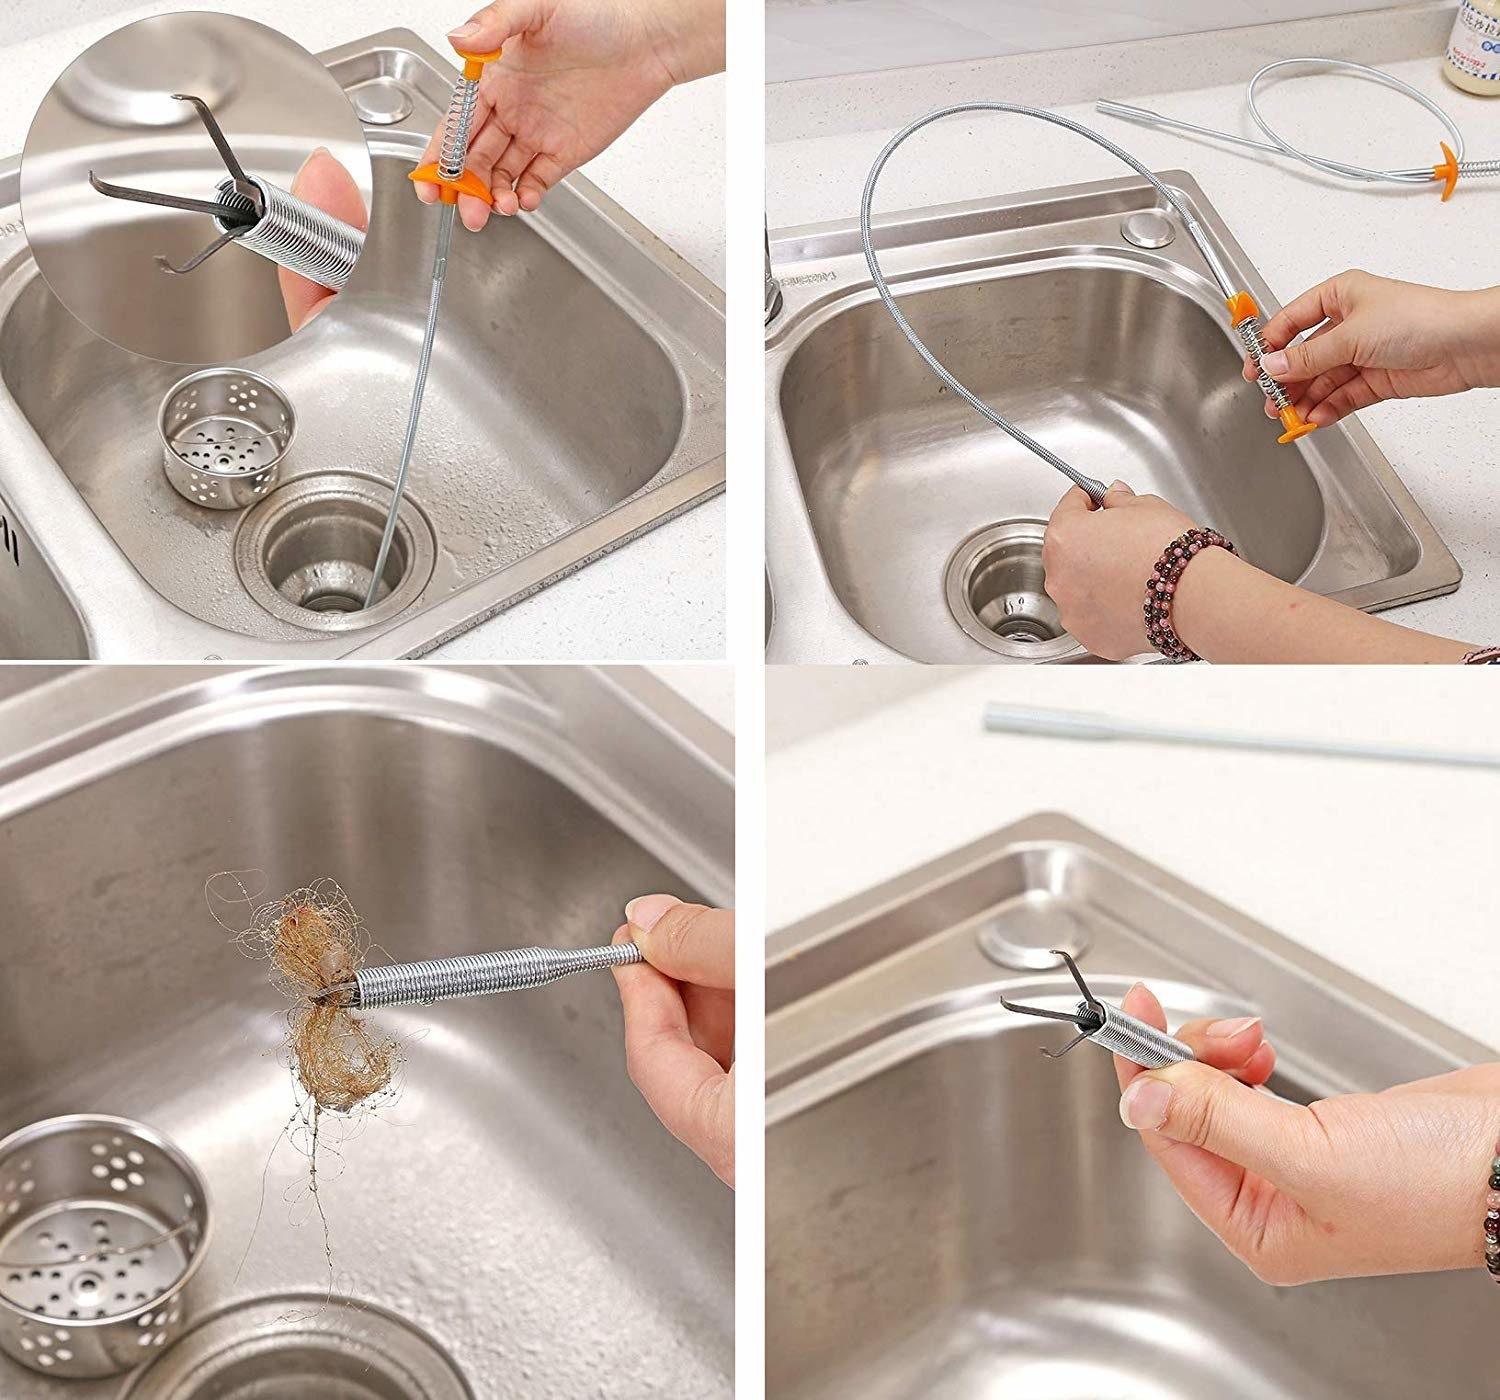 The drain snake pictured removing hair and other gunk for a clogged drain.